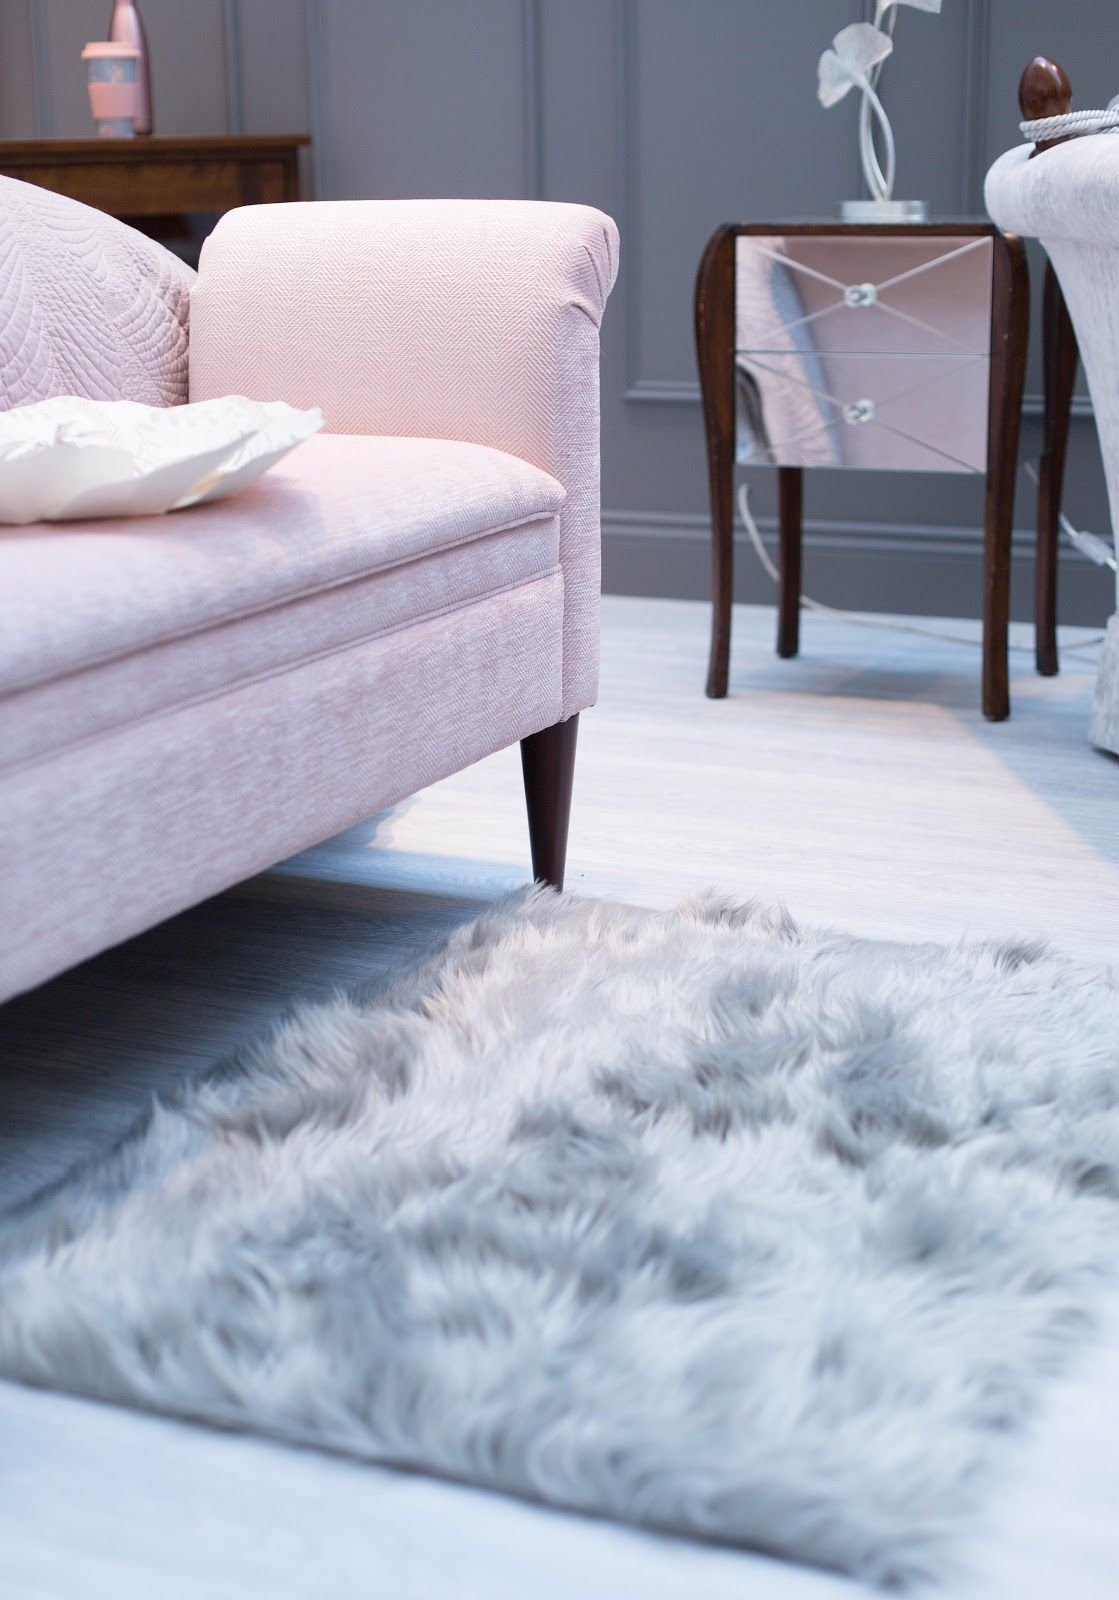 9474d43d6b7 LAURA ASHLEY PRESS SHOW SS17   For the Home   Pinterest   Rugs ...